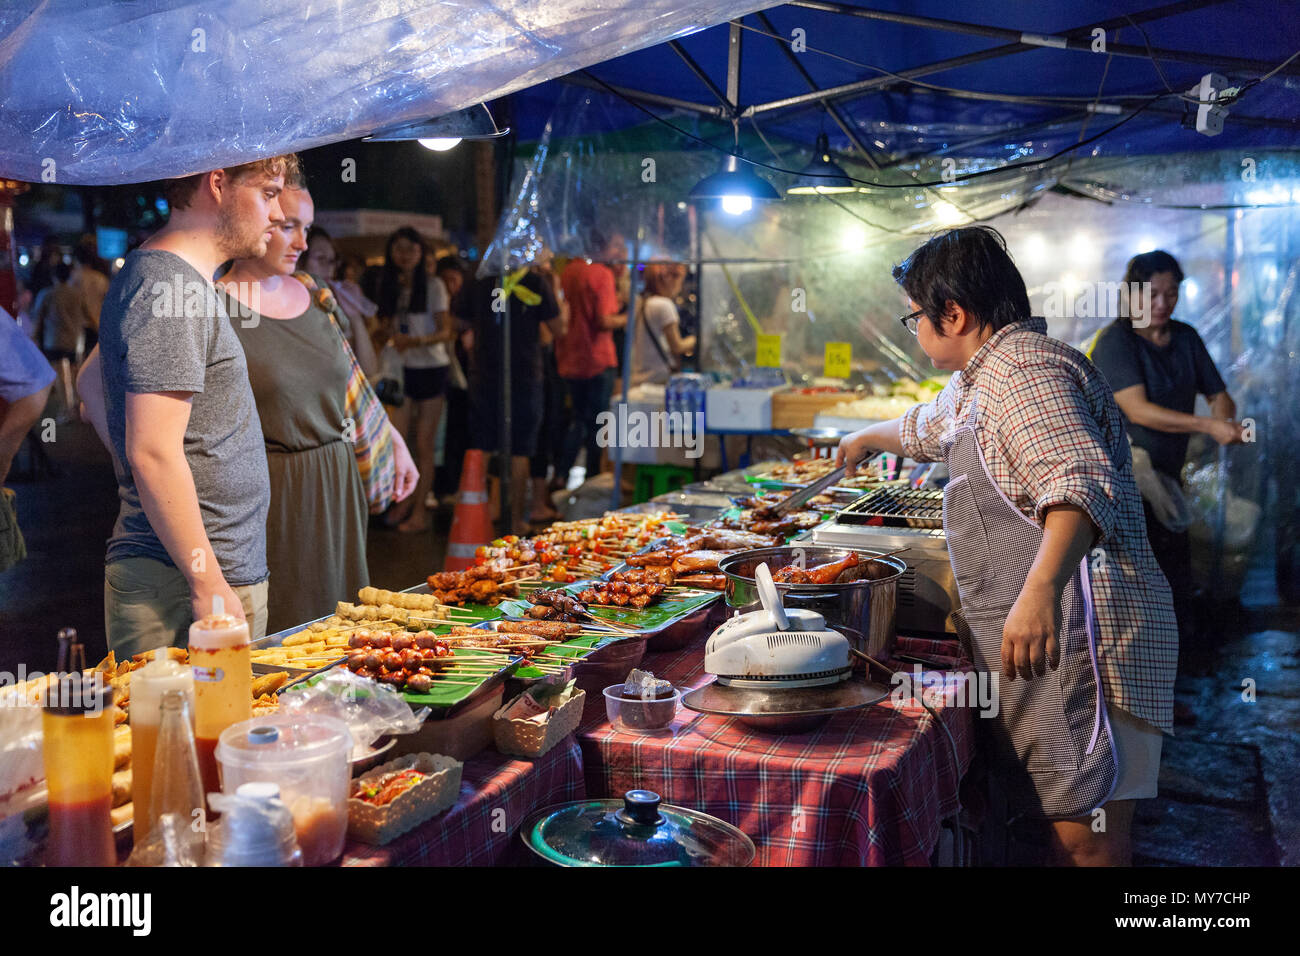 CHIANG MAI, THAILAND - AUGUST 27: Couple buys traditional Thai street food at the Saturday Night Market (Walking Street) on August 27, 2016 in Chiang  - Stock Image